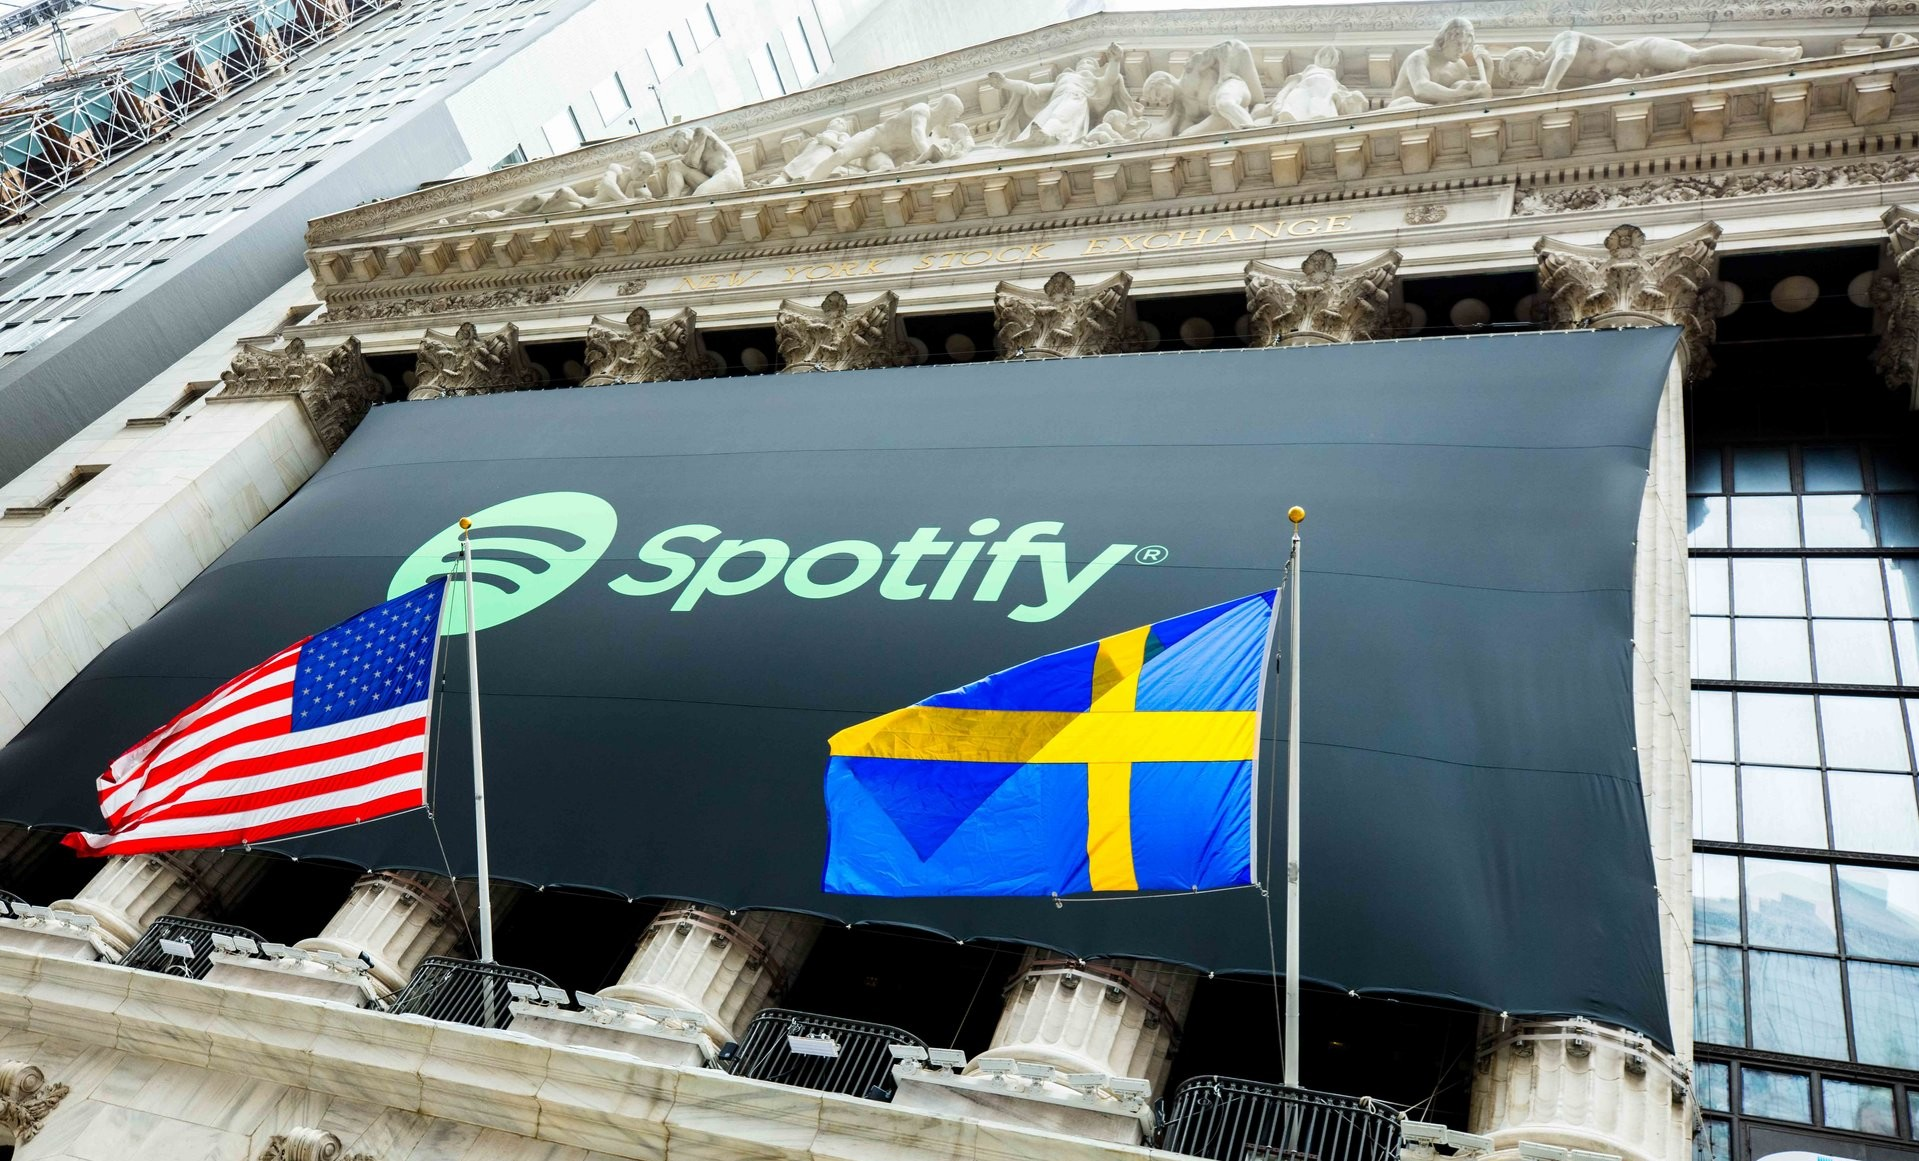 Spotify begins public trading under symbol spot the worlds largest streaming music provider began public trading today on the new york stock exchange under the symbol spot the stock opened at 16590 biocorpaavc Choice Image